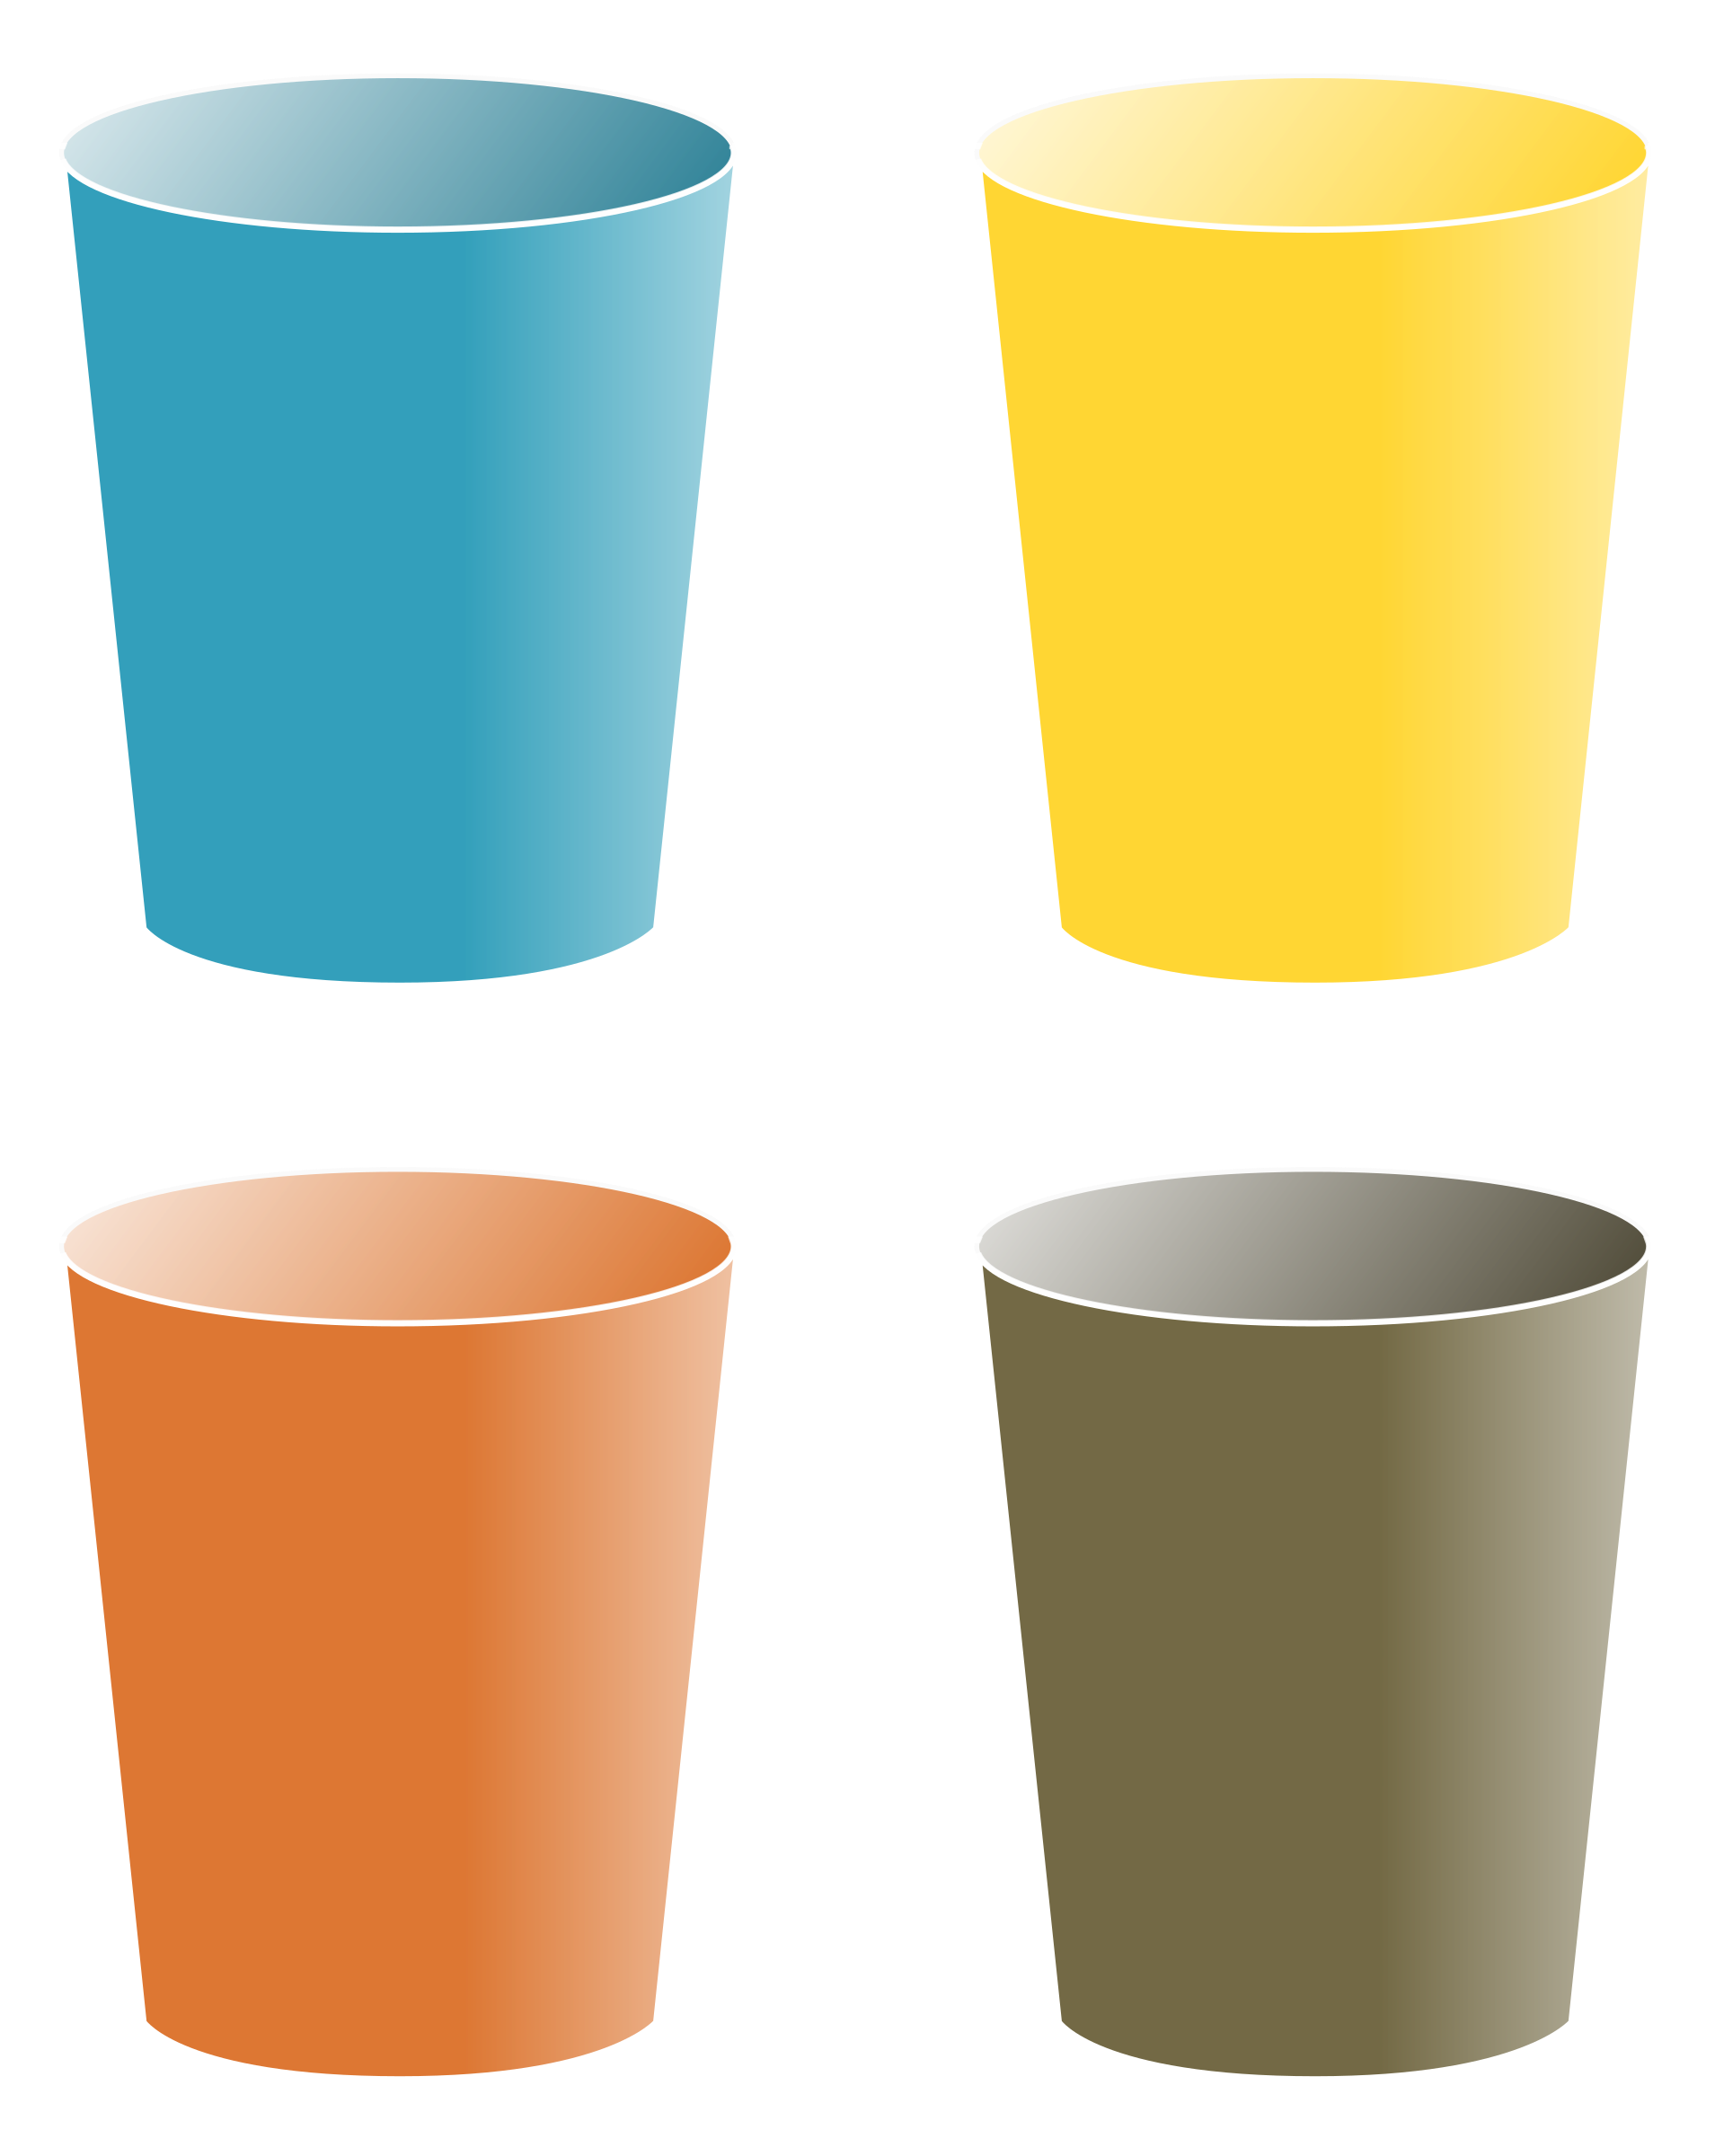 png royalty free Cups clipart. Big image png